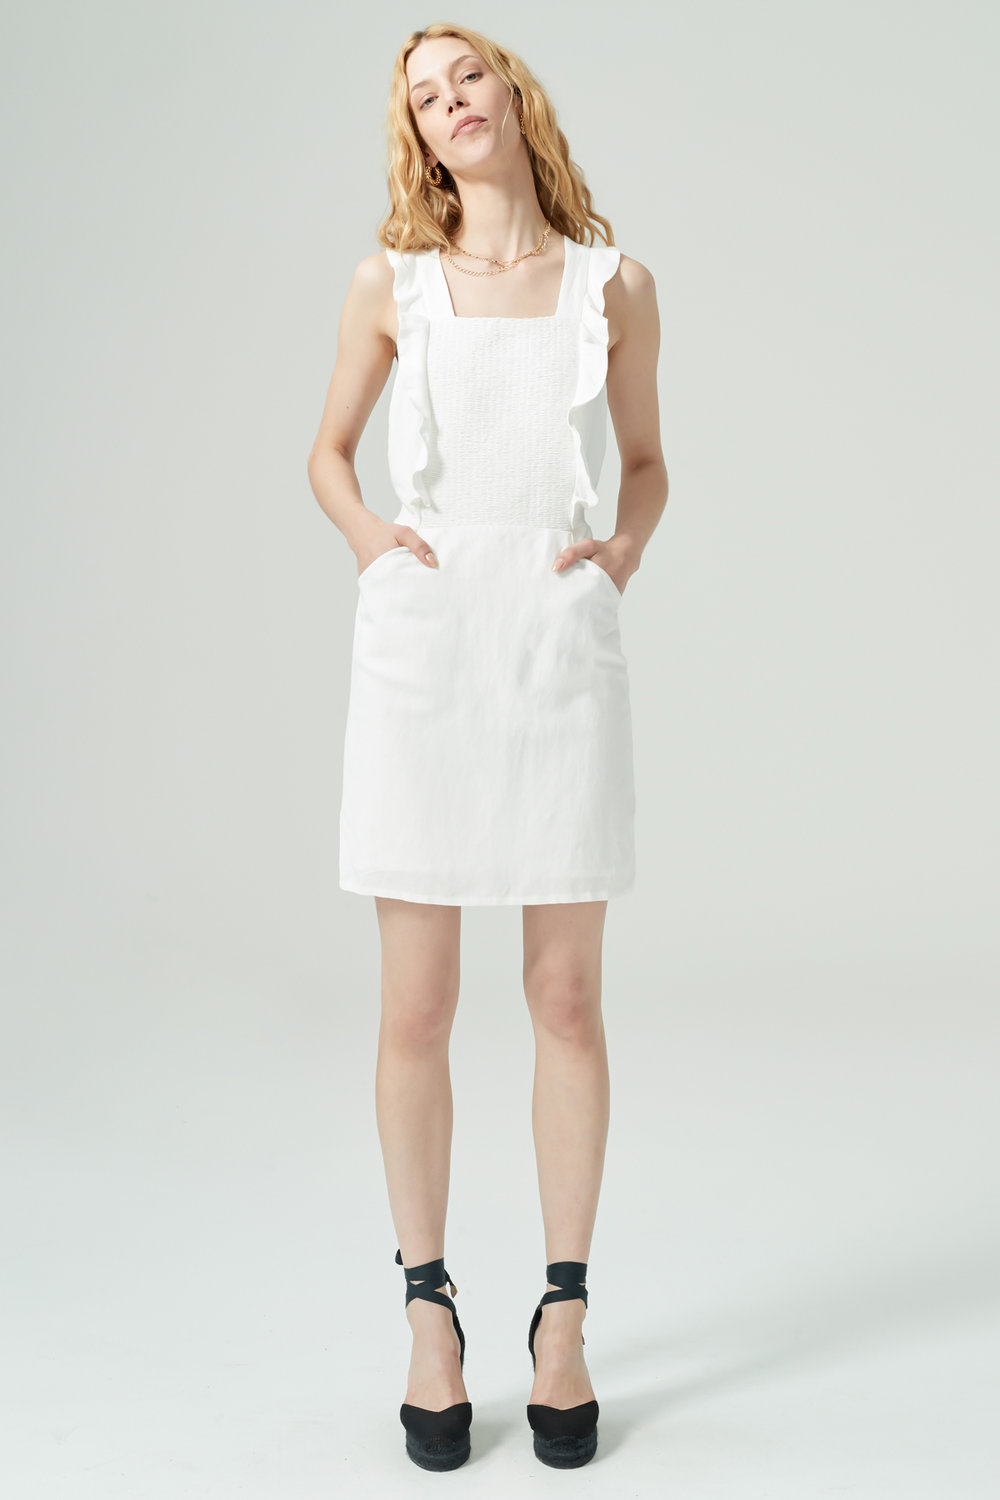 hansen and gretel destiny dress white